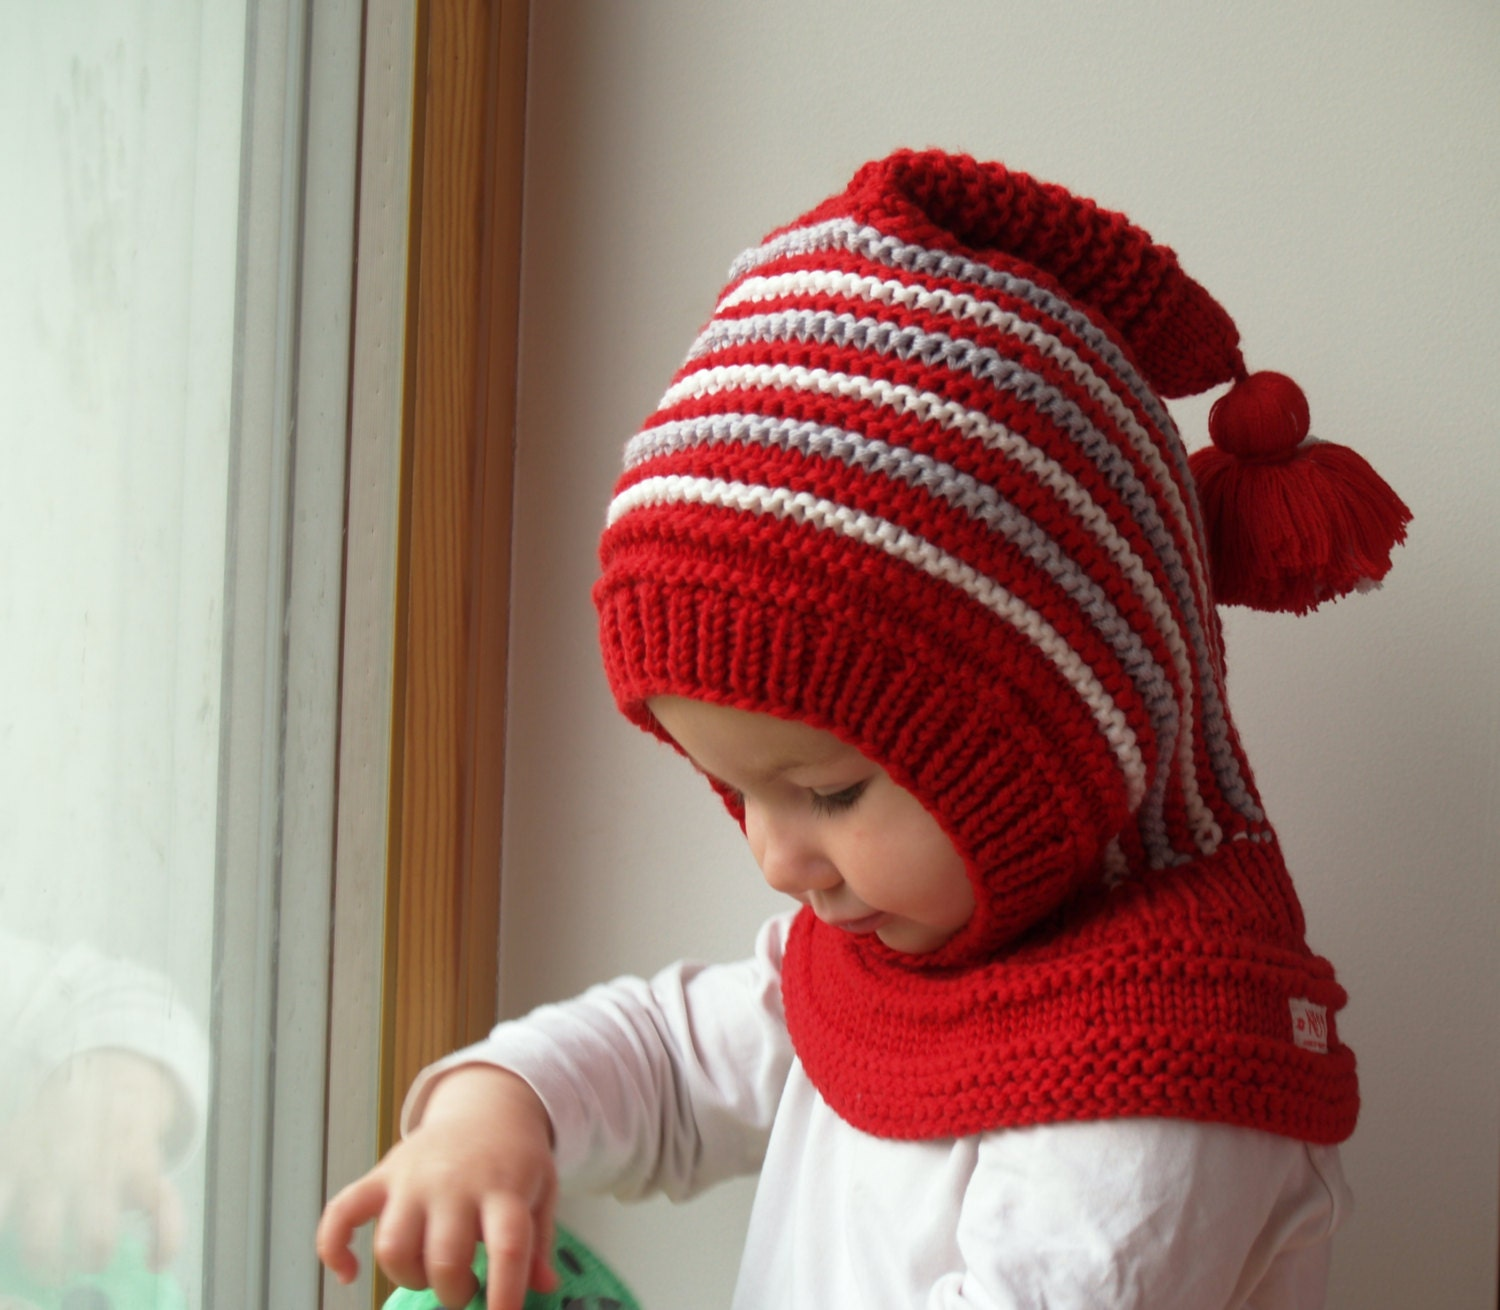 Knit Balaclava for Baby Toddler Child Hat with Pom Pom Tail